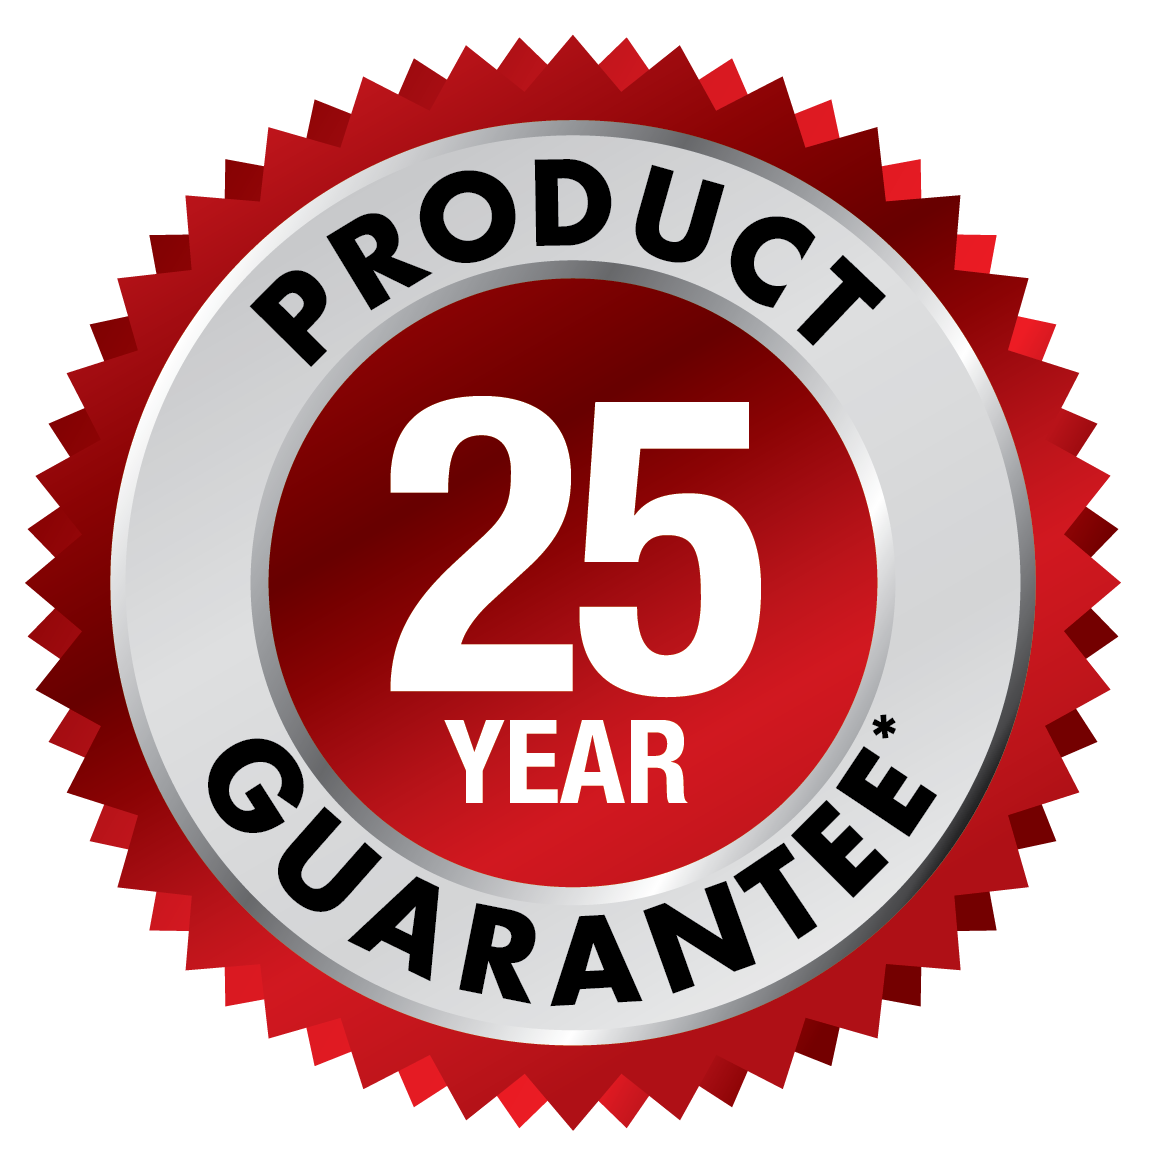 25 Year Guarantee USA